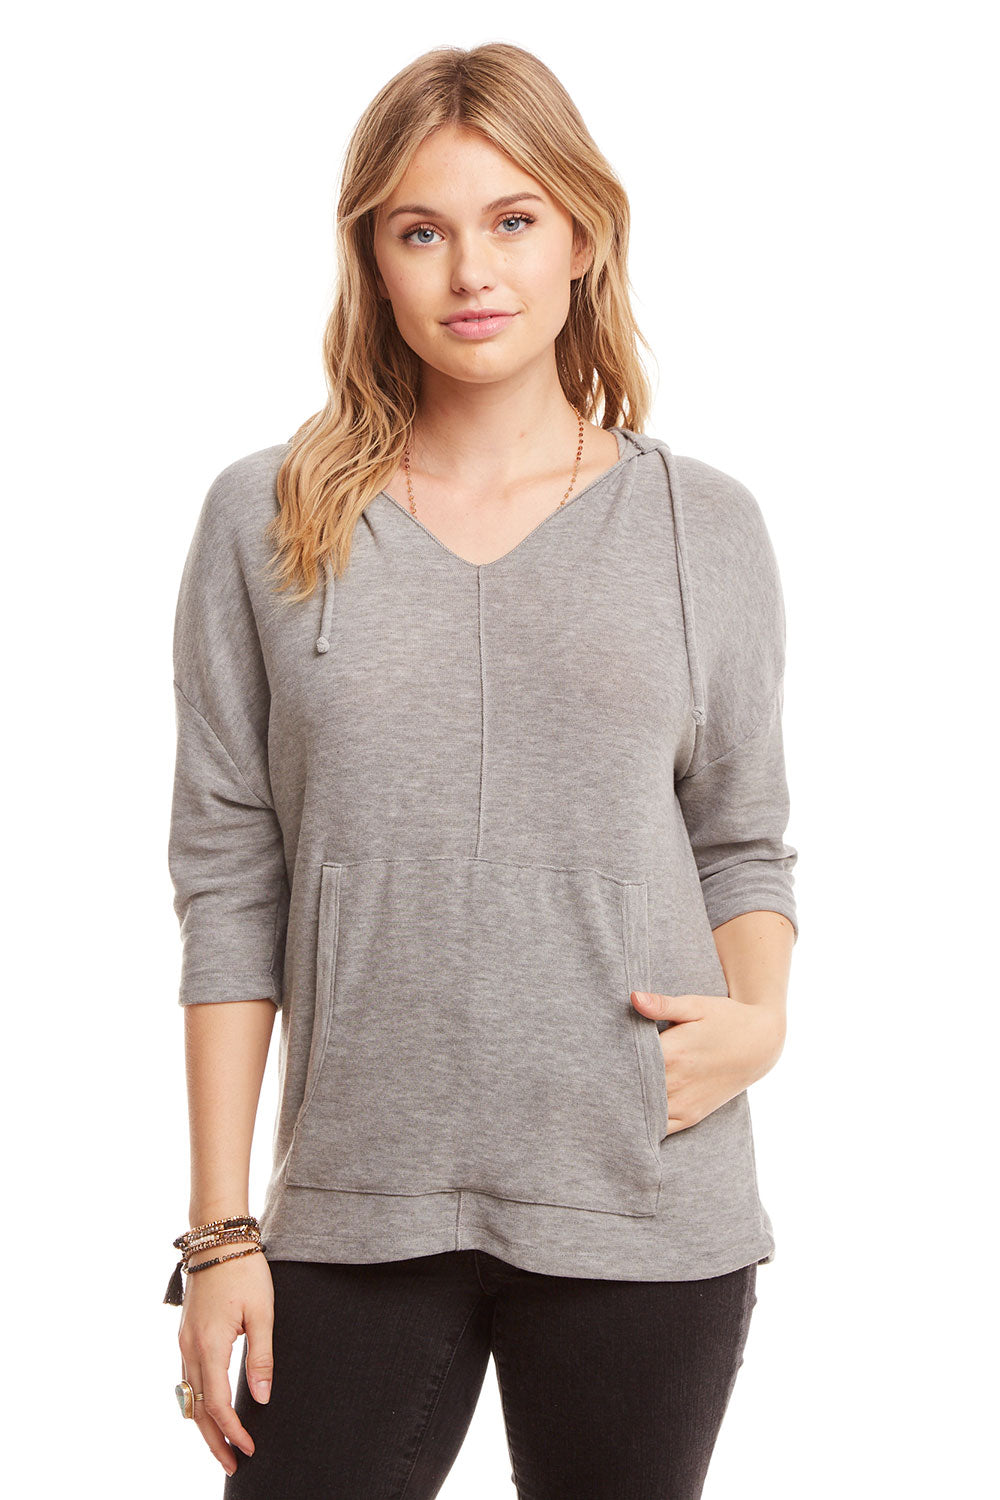 Cozy Knit 3/4 Sleeve Boxy Pullover Hoodie WOMENS chaserbrand4.myshopify.com